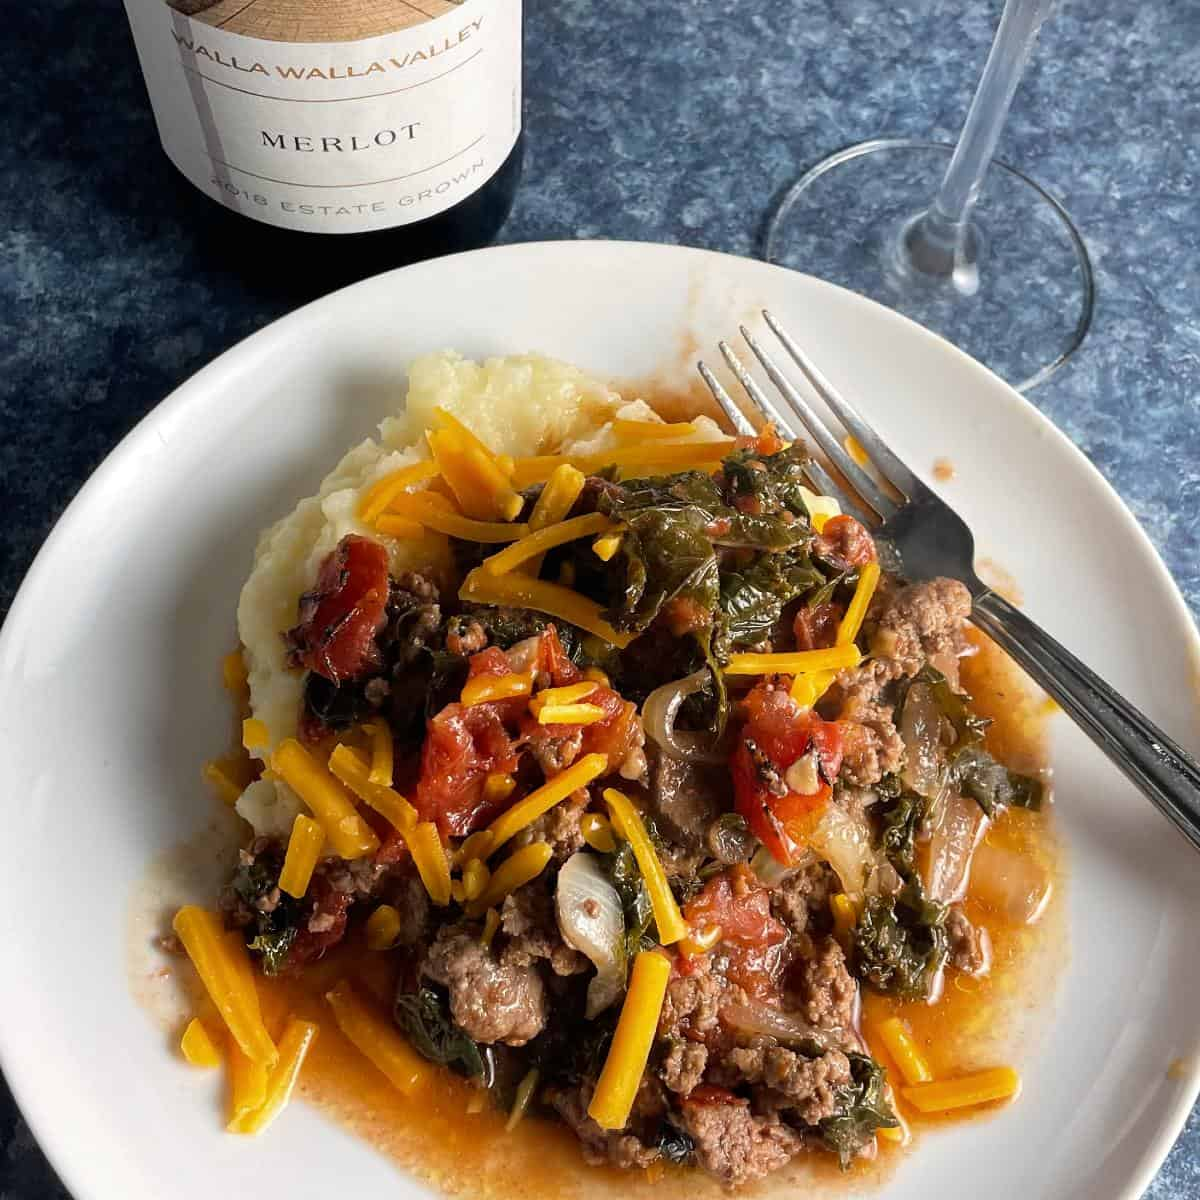 ground beef and kale topped with cheddar cheese, served over mashed potatoes. Red Merlot wine in the background.